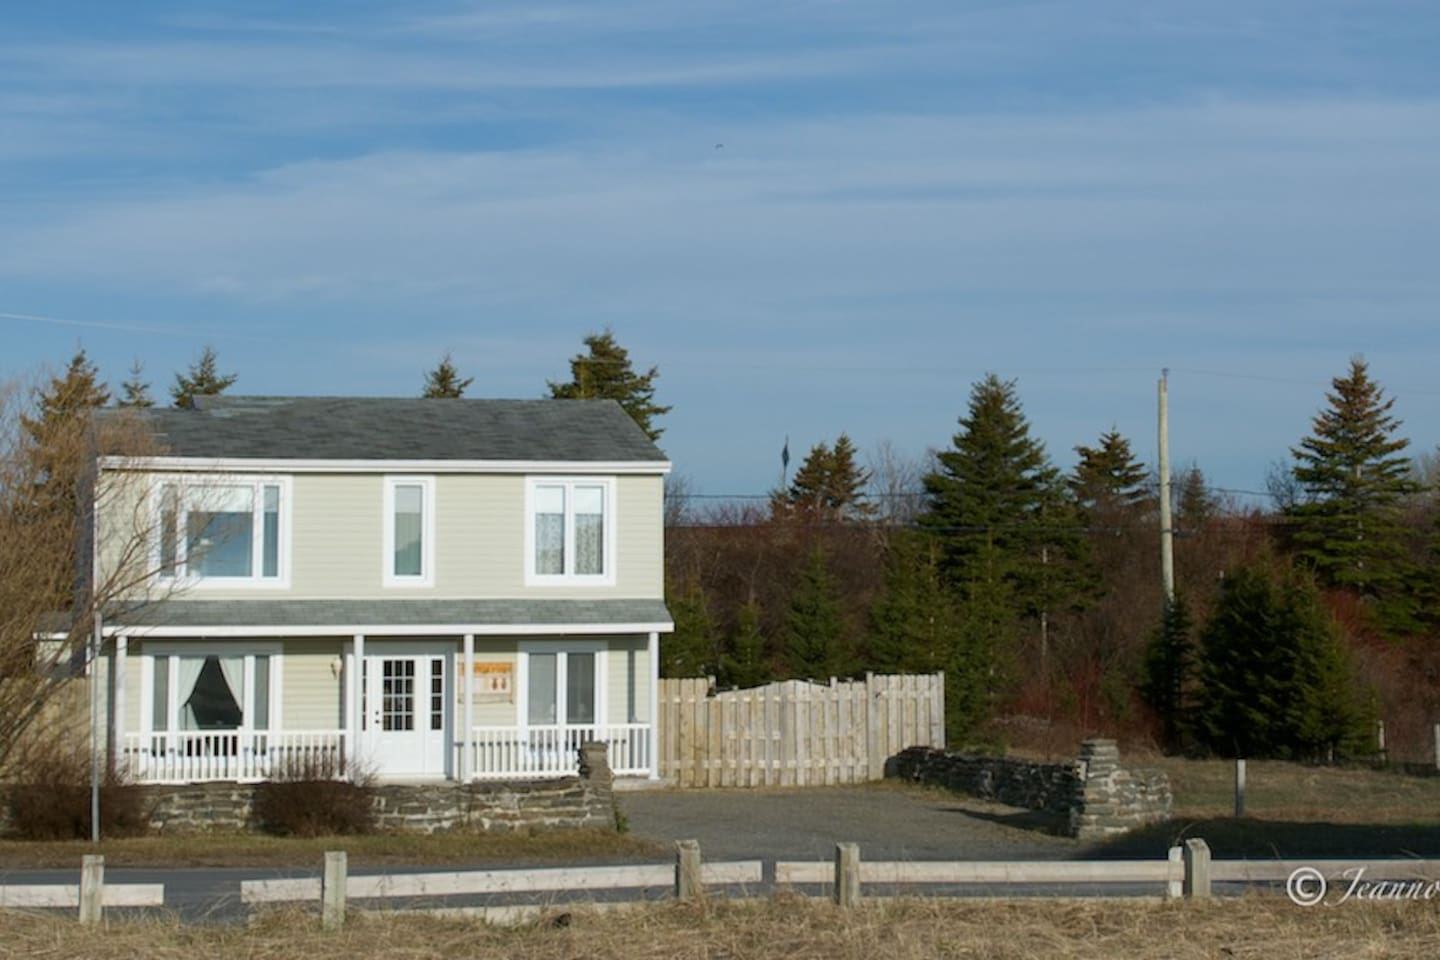 Maison sur la plage haldimand houses for rent in gaspé québec canada